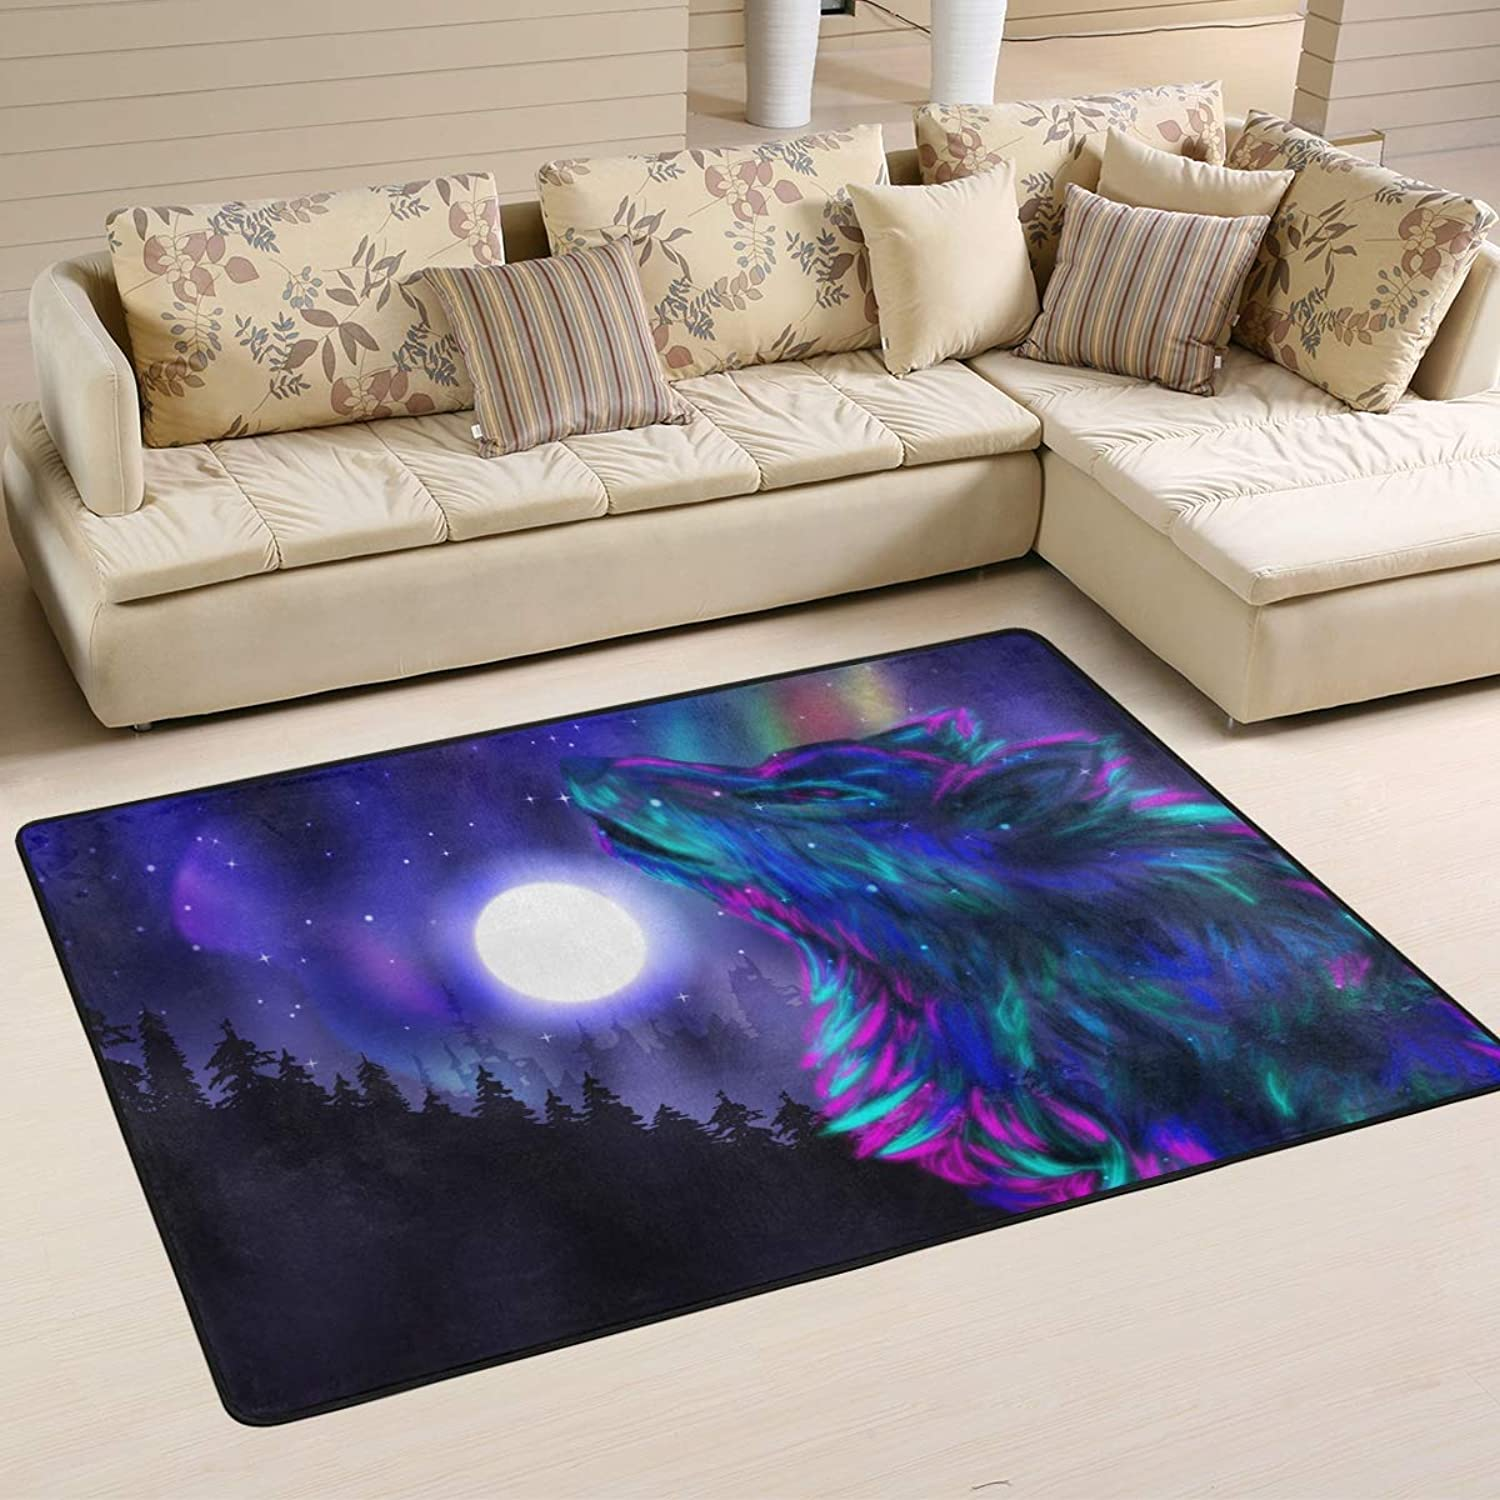 Area Rugs Doormats Wolf Howling Spirit Soft Carpet Mat 6'x4' (72x48 Inches) for Living Dining Dorm Room Bedroom Home Decorative